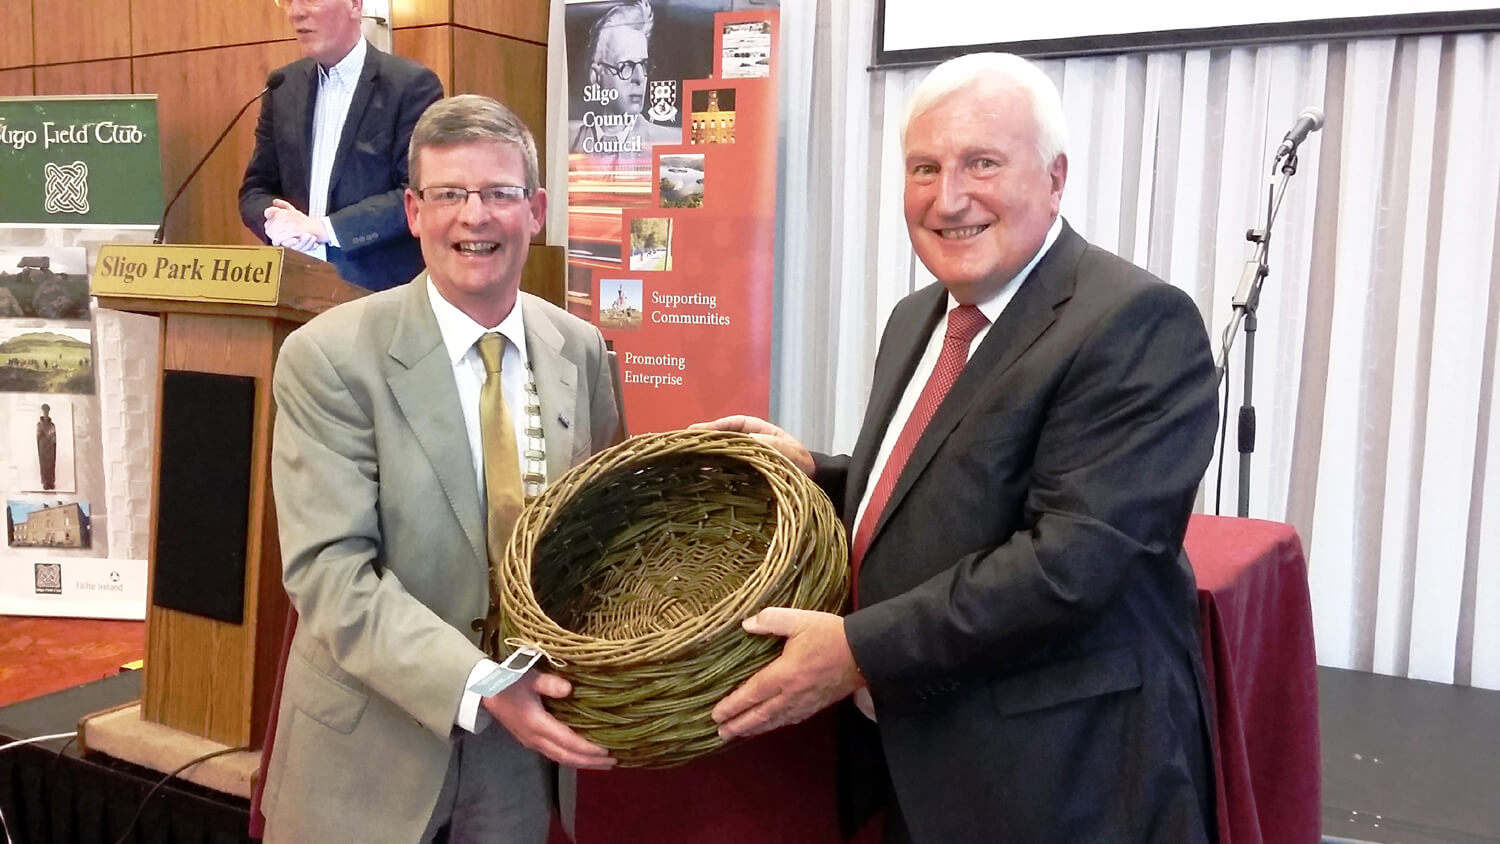 Heritage Council Board visits Sligo